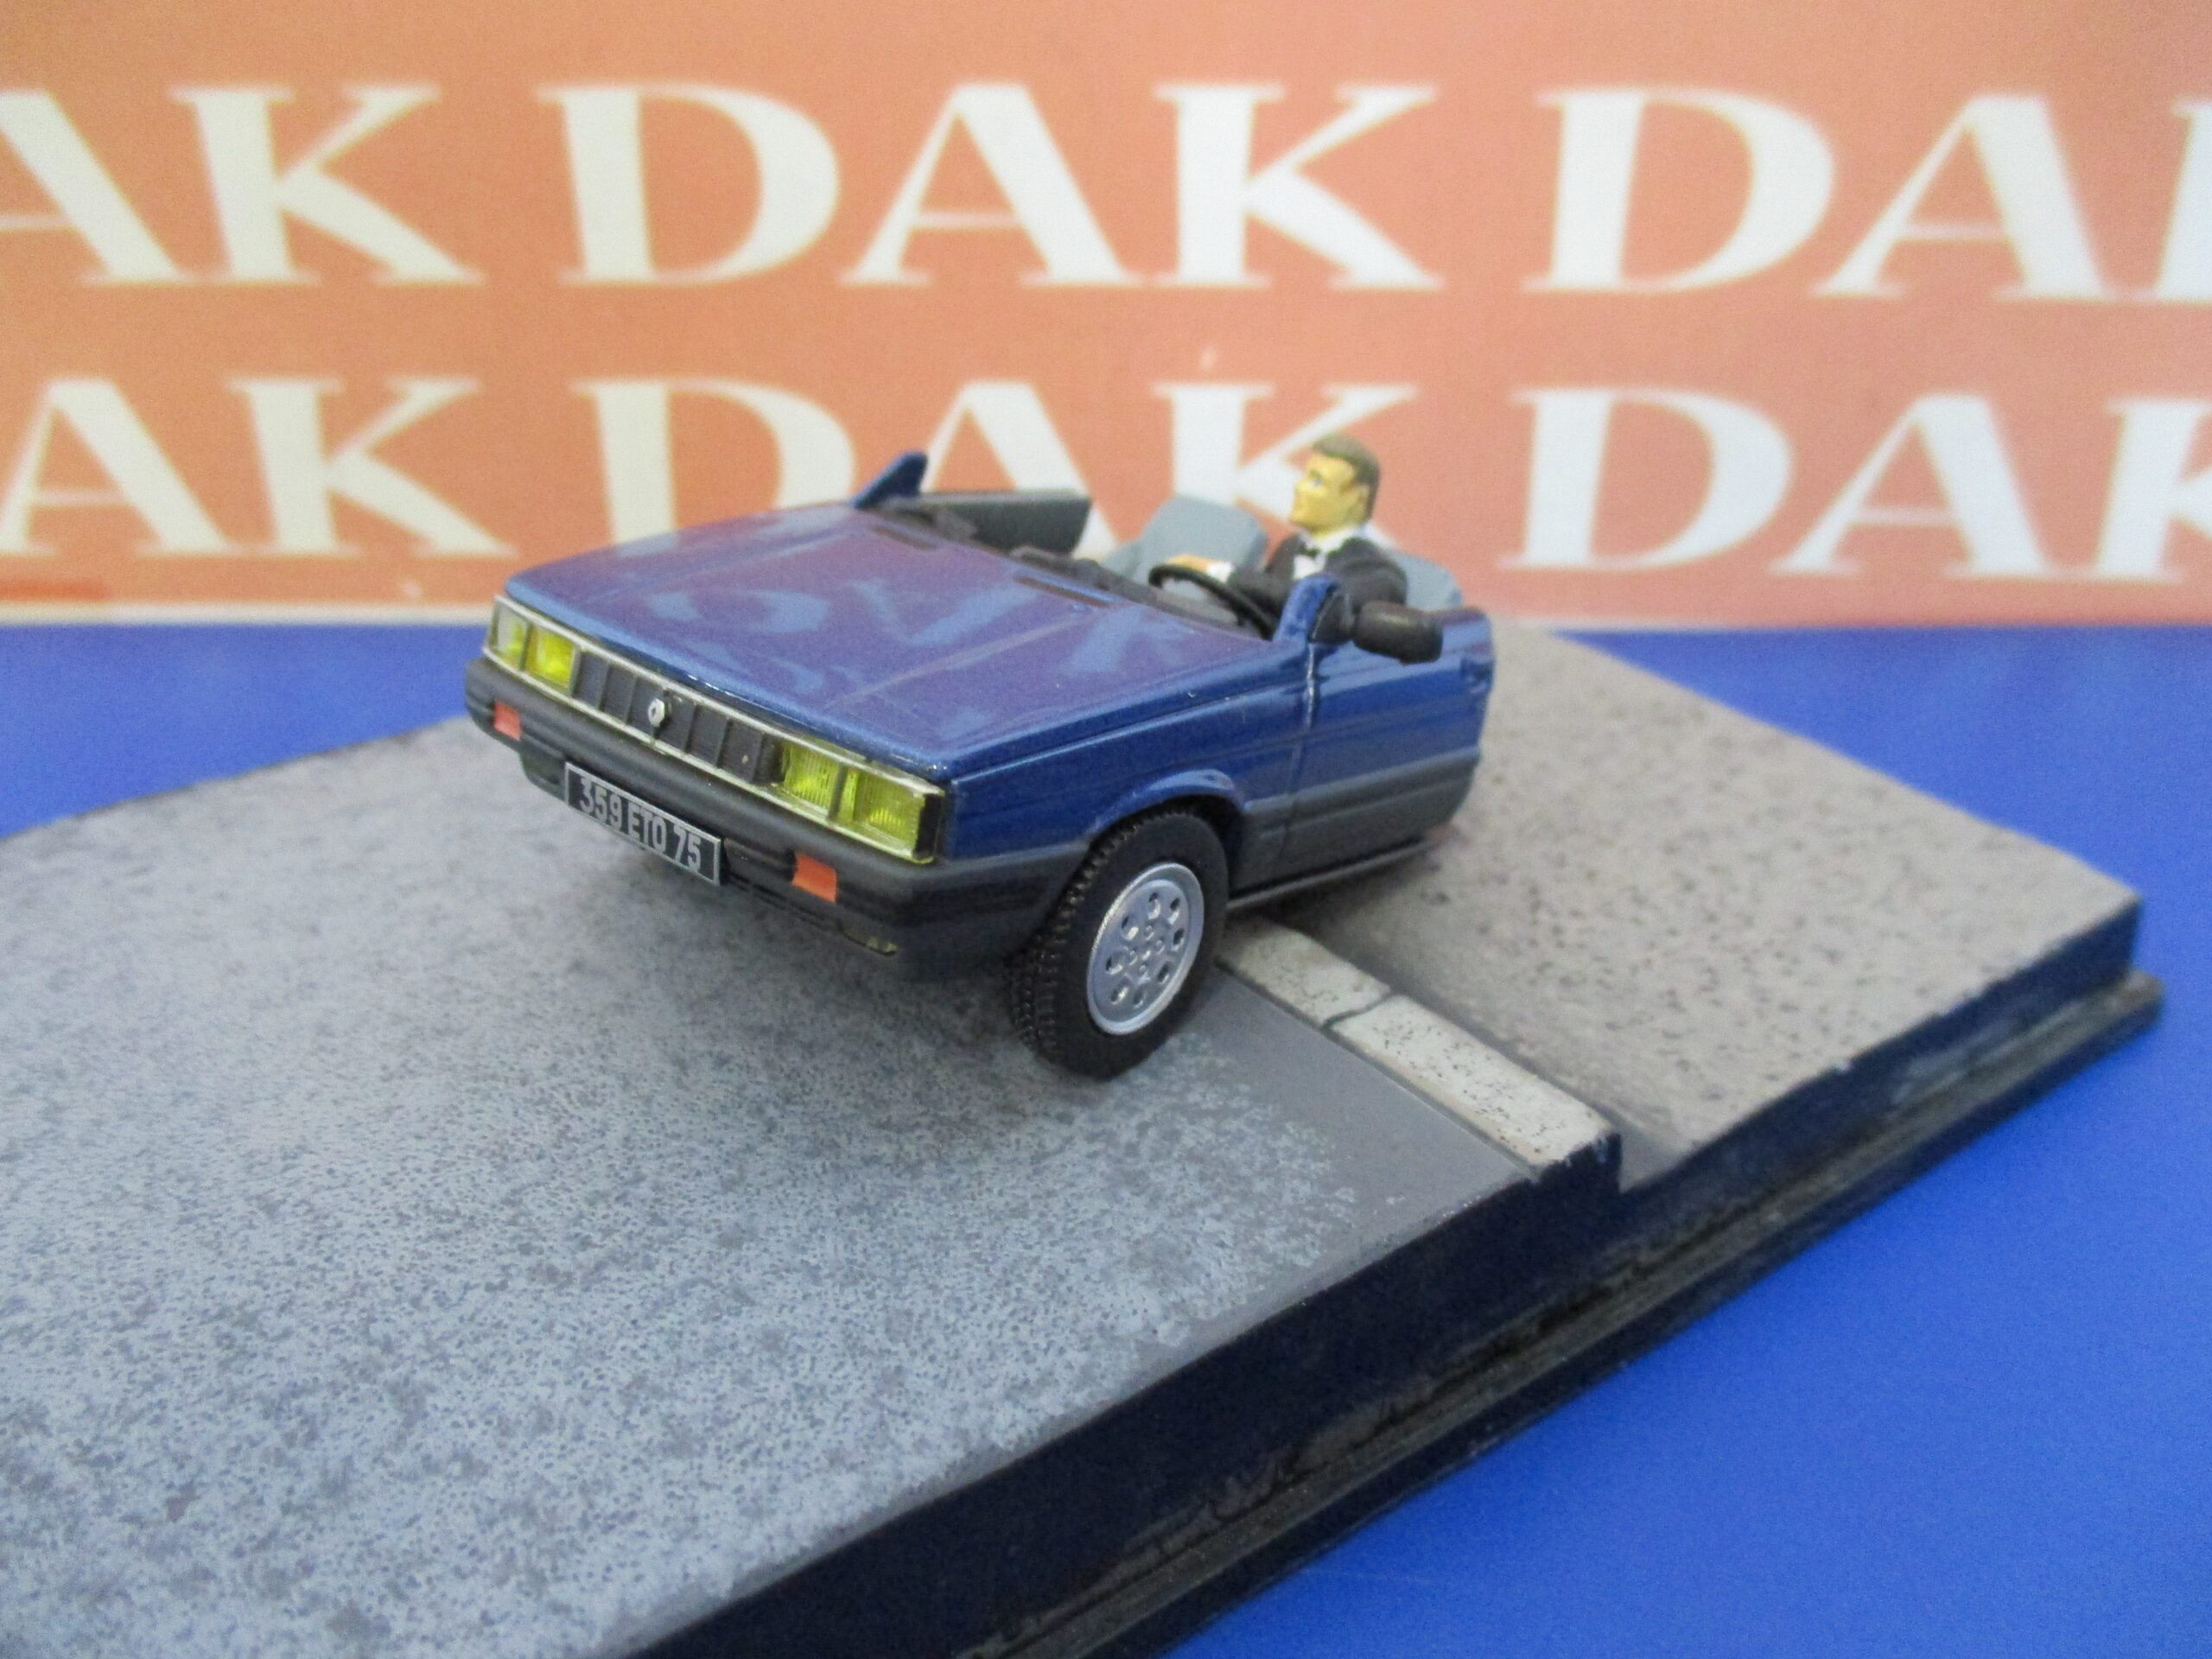 A View To A Kill Die cast 1//43 Modellino Auto 007 James Bond Renault 11 Taxi